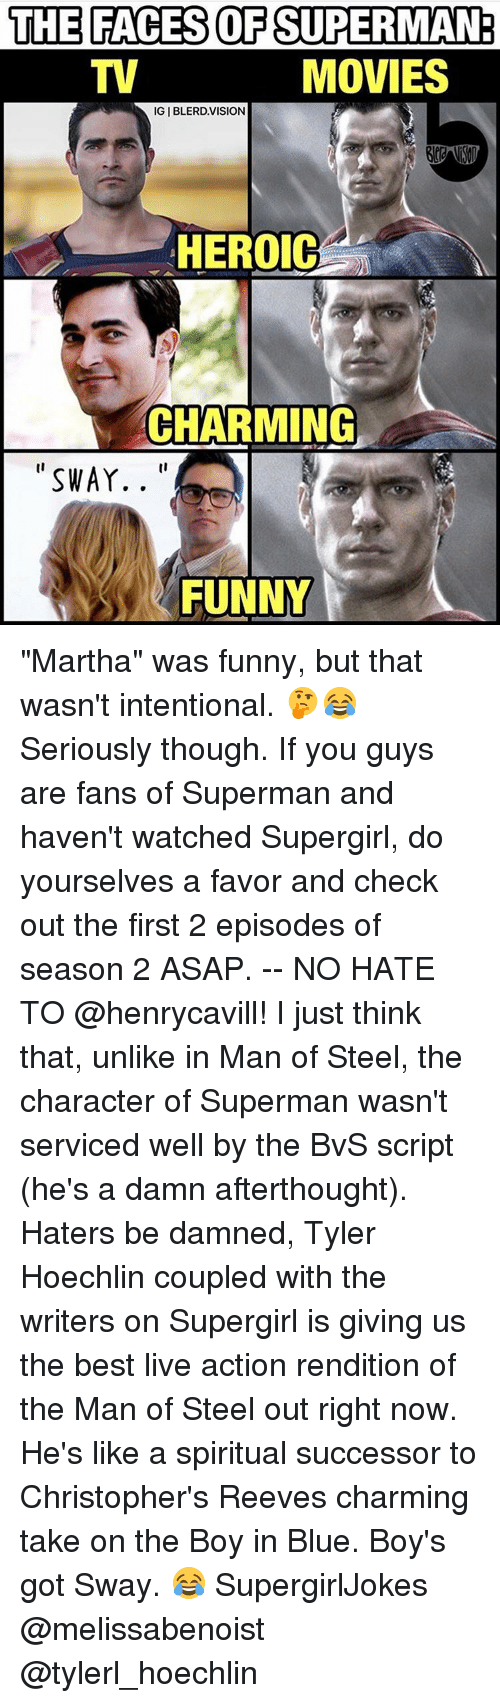 """Reev: THE FACES OF SUPERMAN  MOVIES  IGIBLERD. VISION  HEROIC  CHARMING  SWAY.  FUNNY """"Martha"""" was funny, but that wasn't intentional. 🤔😂 Seriously though. If you guys are fans of Superman and haven't watched Supergirl, do yourselves a favor and check out the first 2 episodes of season 2 ASAP. -- NO HATE TO @henrycavill! I just think that, unlike in Man of Steel, the character of Superman wasn't serviced well by the BvS script (he's a damn afterthought). Haters be damned, Tyler Hoechlin coupled with the writers on Supergirl is giving us the best live action rendition of the Man of Steel out right now. He's like a spiritual successor to Christopher's Reeves charming take on the Boy in Blue. Boy's got Sway. 😂 SupergirlJokes @melissabenoist @tylerl_hoechlin"""